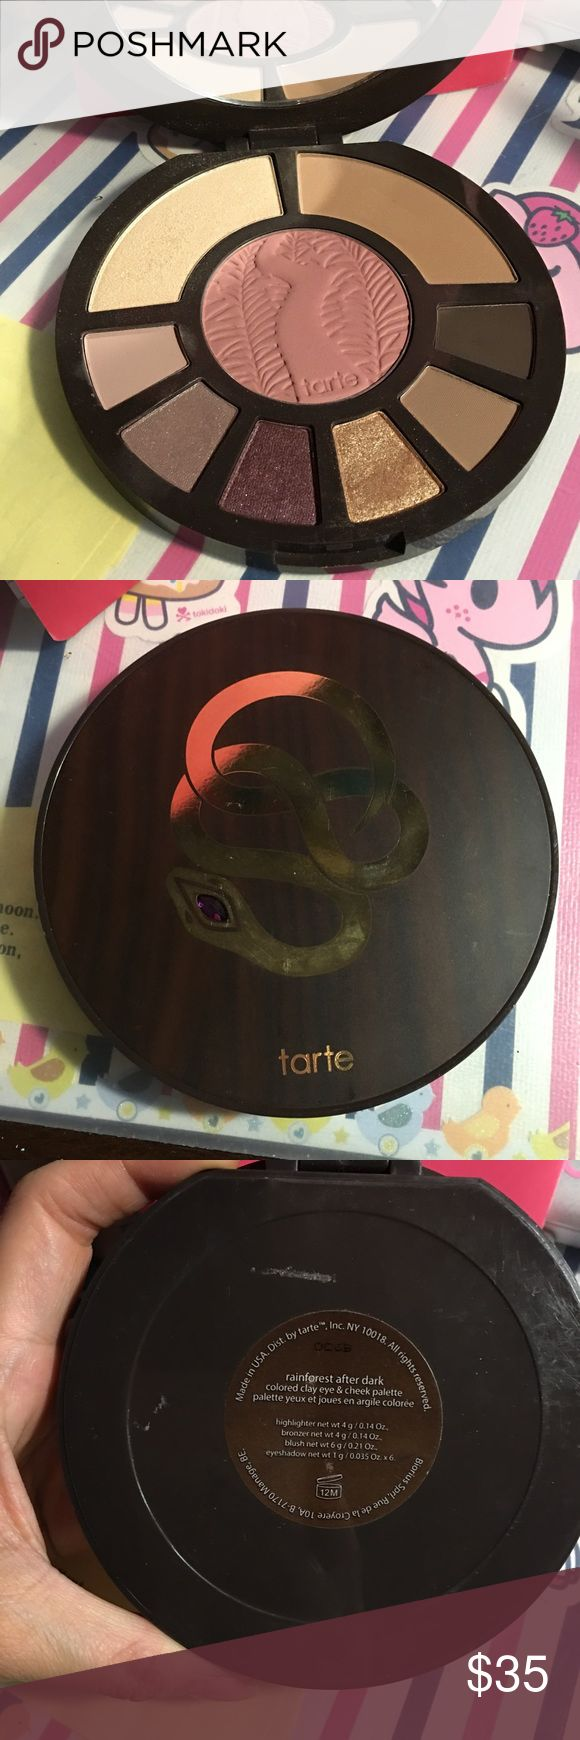 Tarte rainforest after dark palette This is a lightly used rain forest after dark eyeshadow, highlighter and blush set.  Super pretty but purple isn't my color so I'm selling it. 🚫NO TRADES🚫 price is pretty firm. I (📦PLEASE NOTE, if you purchase from me on a Friday, I will not be able to ship until Monday afternoon). I have merc so ask before you buy. Tarte Makeup Eyeshadow